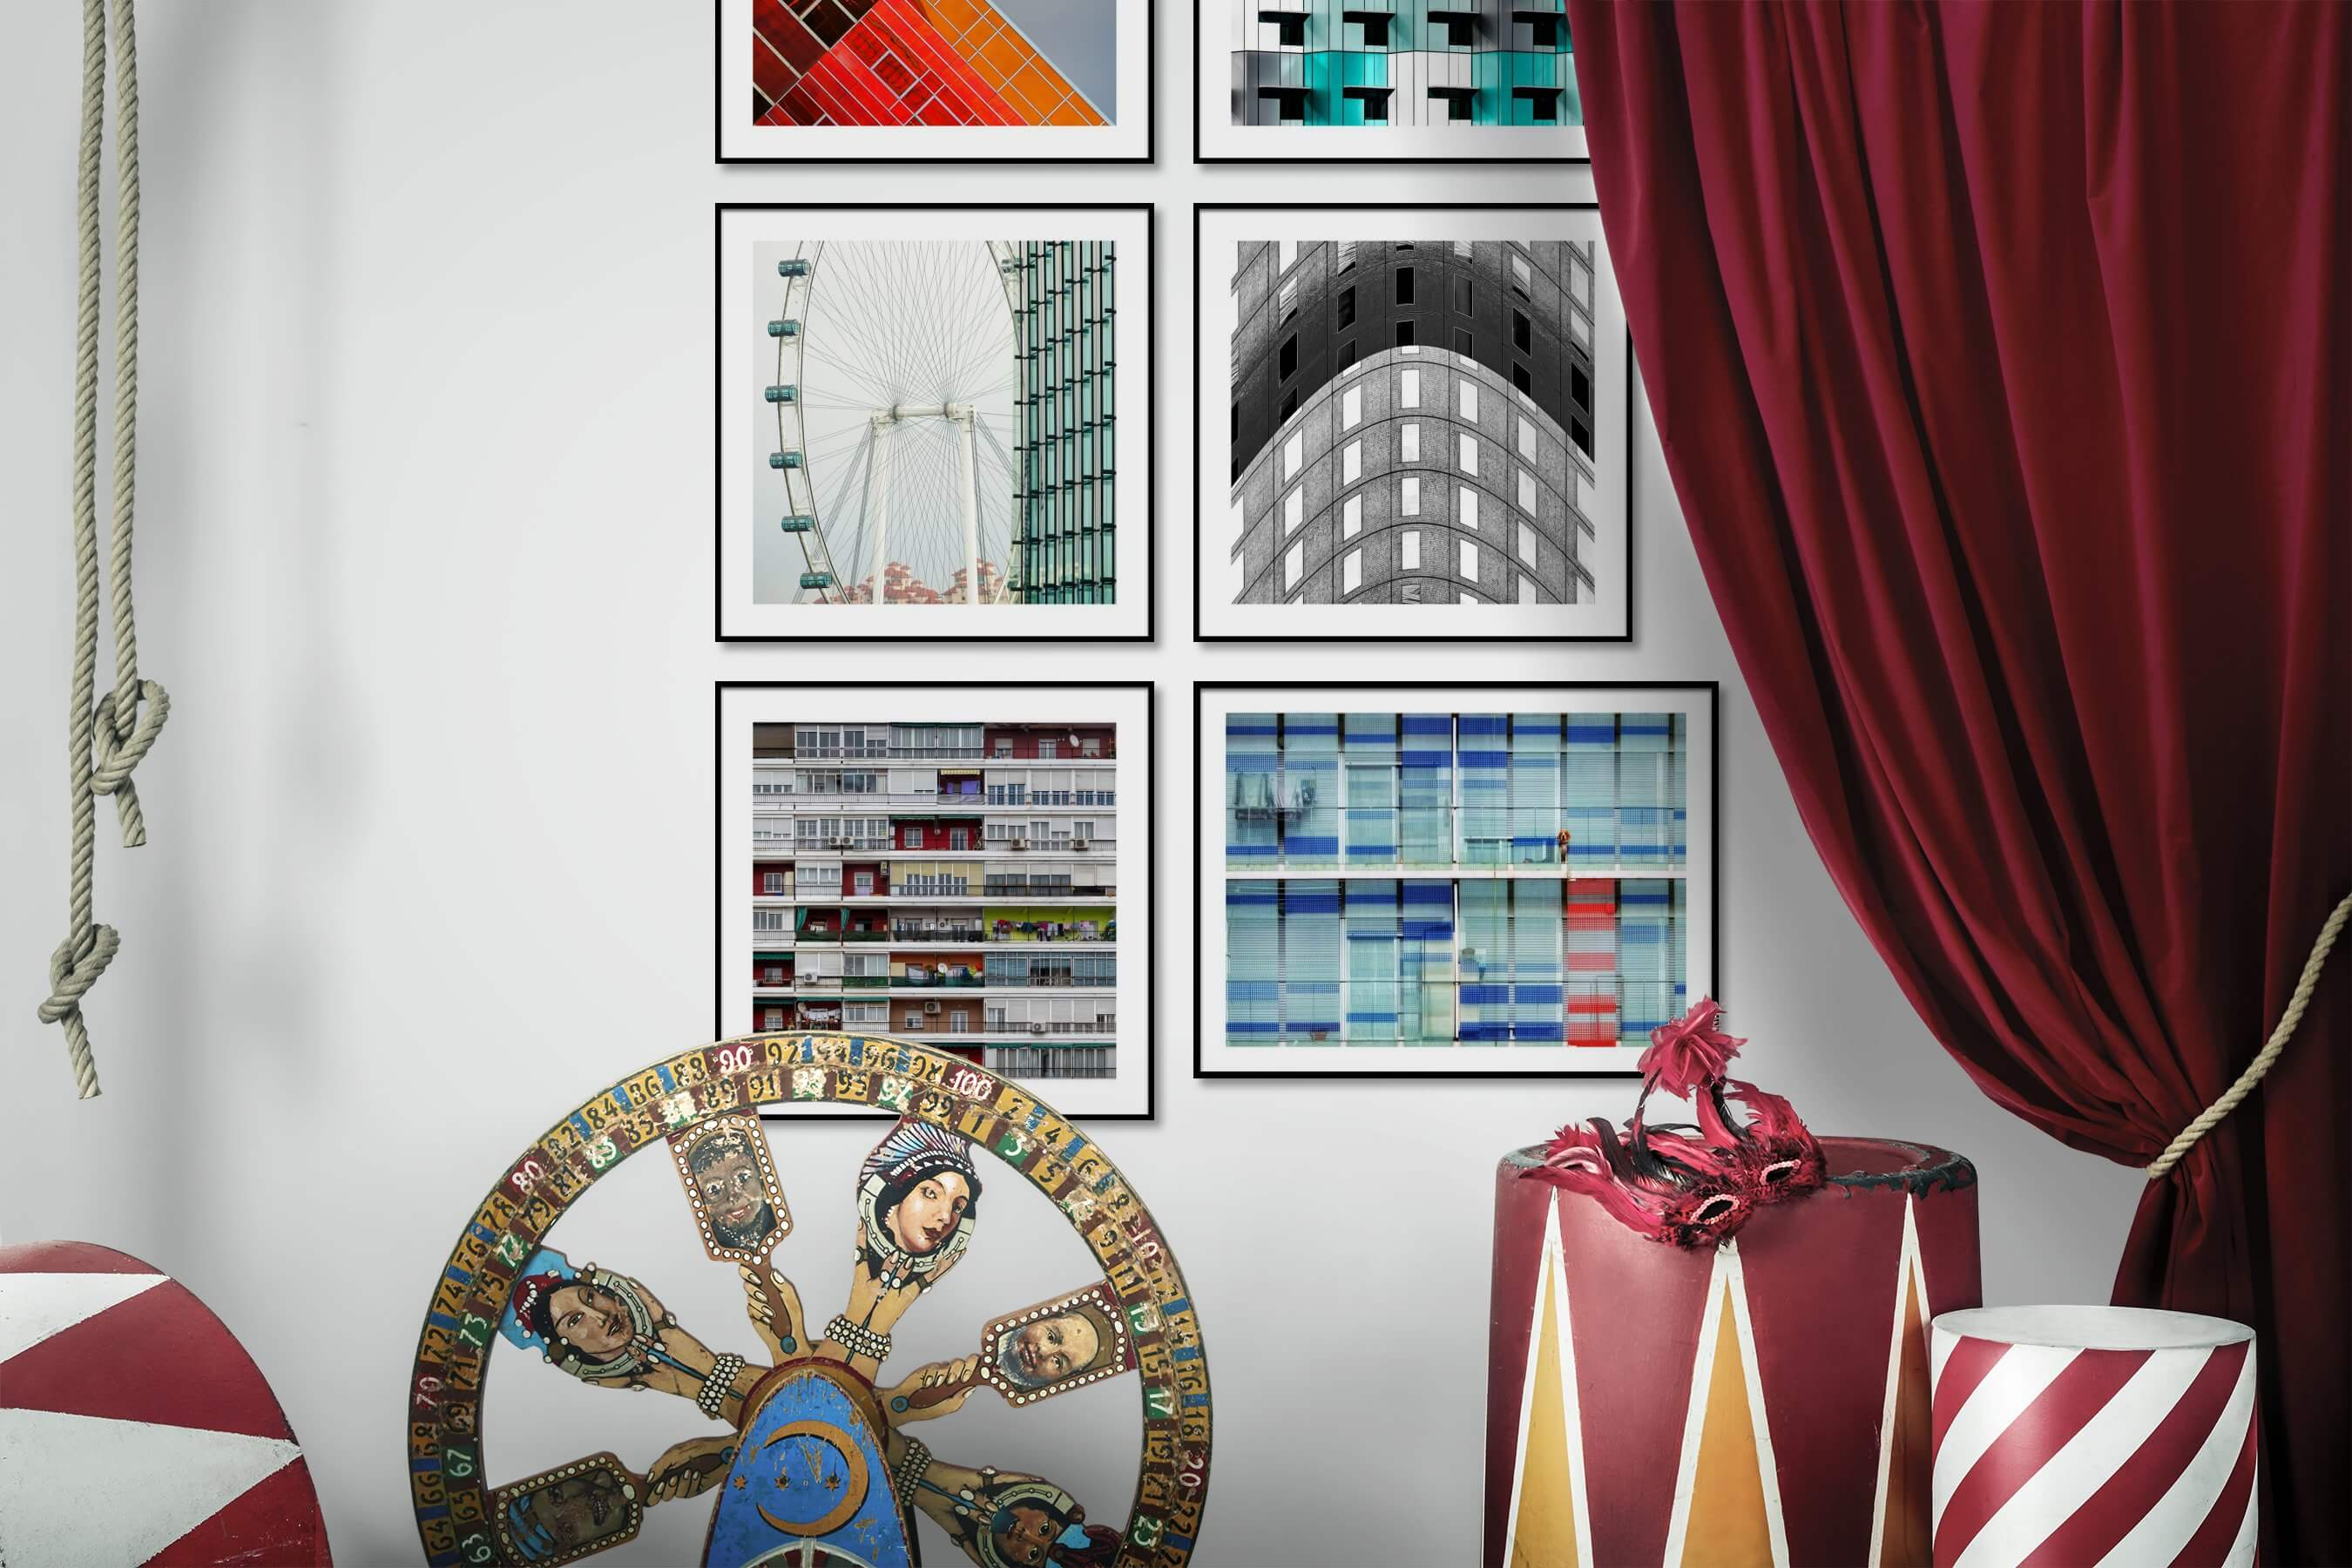 Gallery wall idea with six framed pictures arranged on a wall depicting Colorful, For the Moderate, For the Maximalist, City Life, Black & White, and Animals